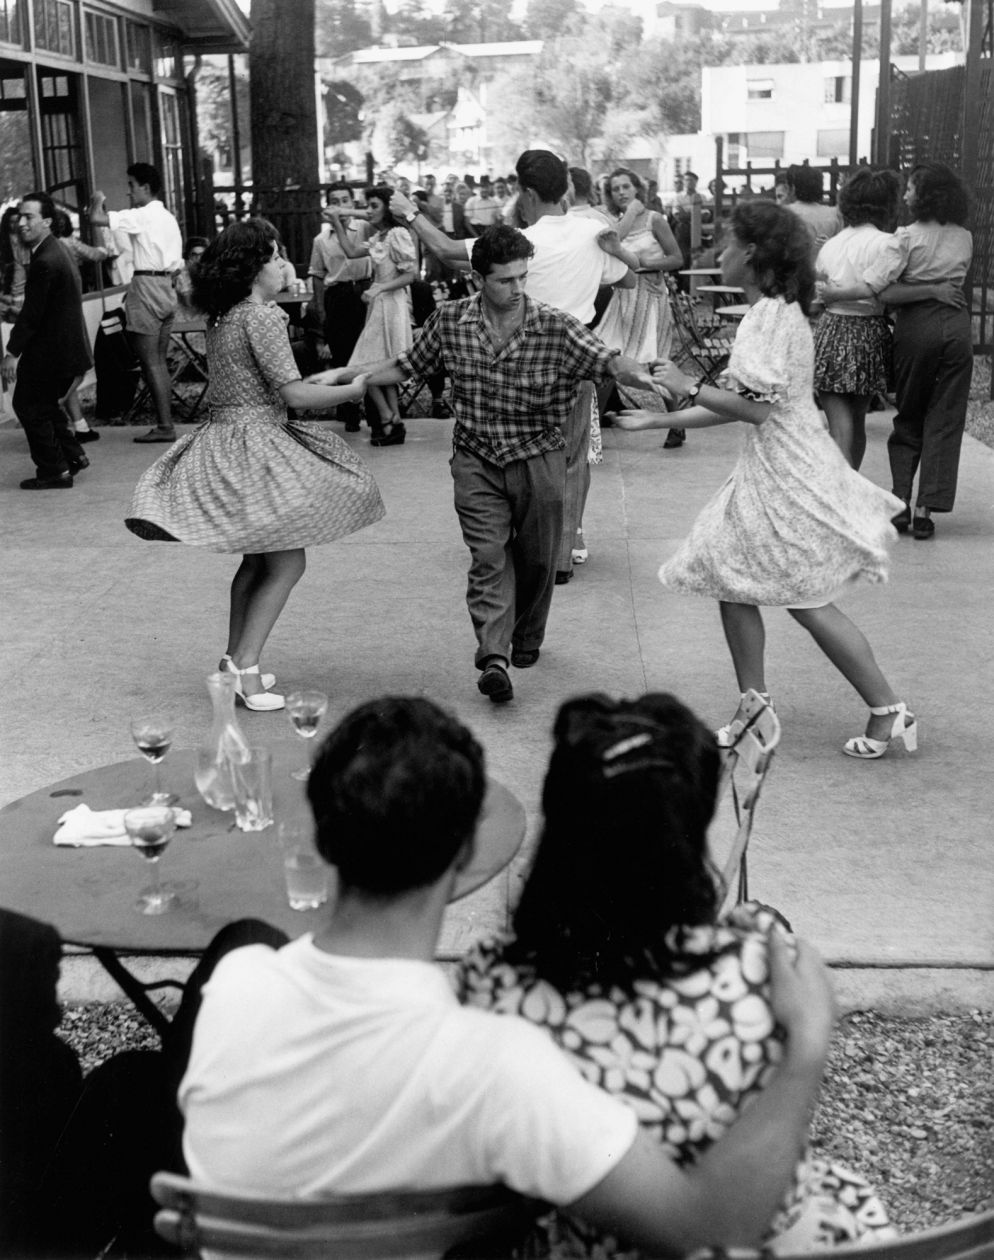 Bal a Nogent (1947) by Willy Ronis